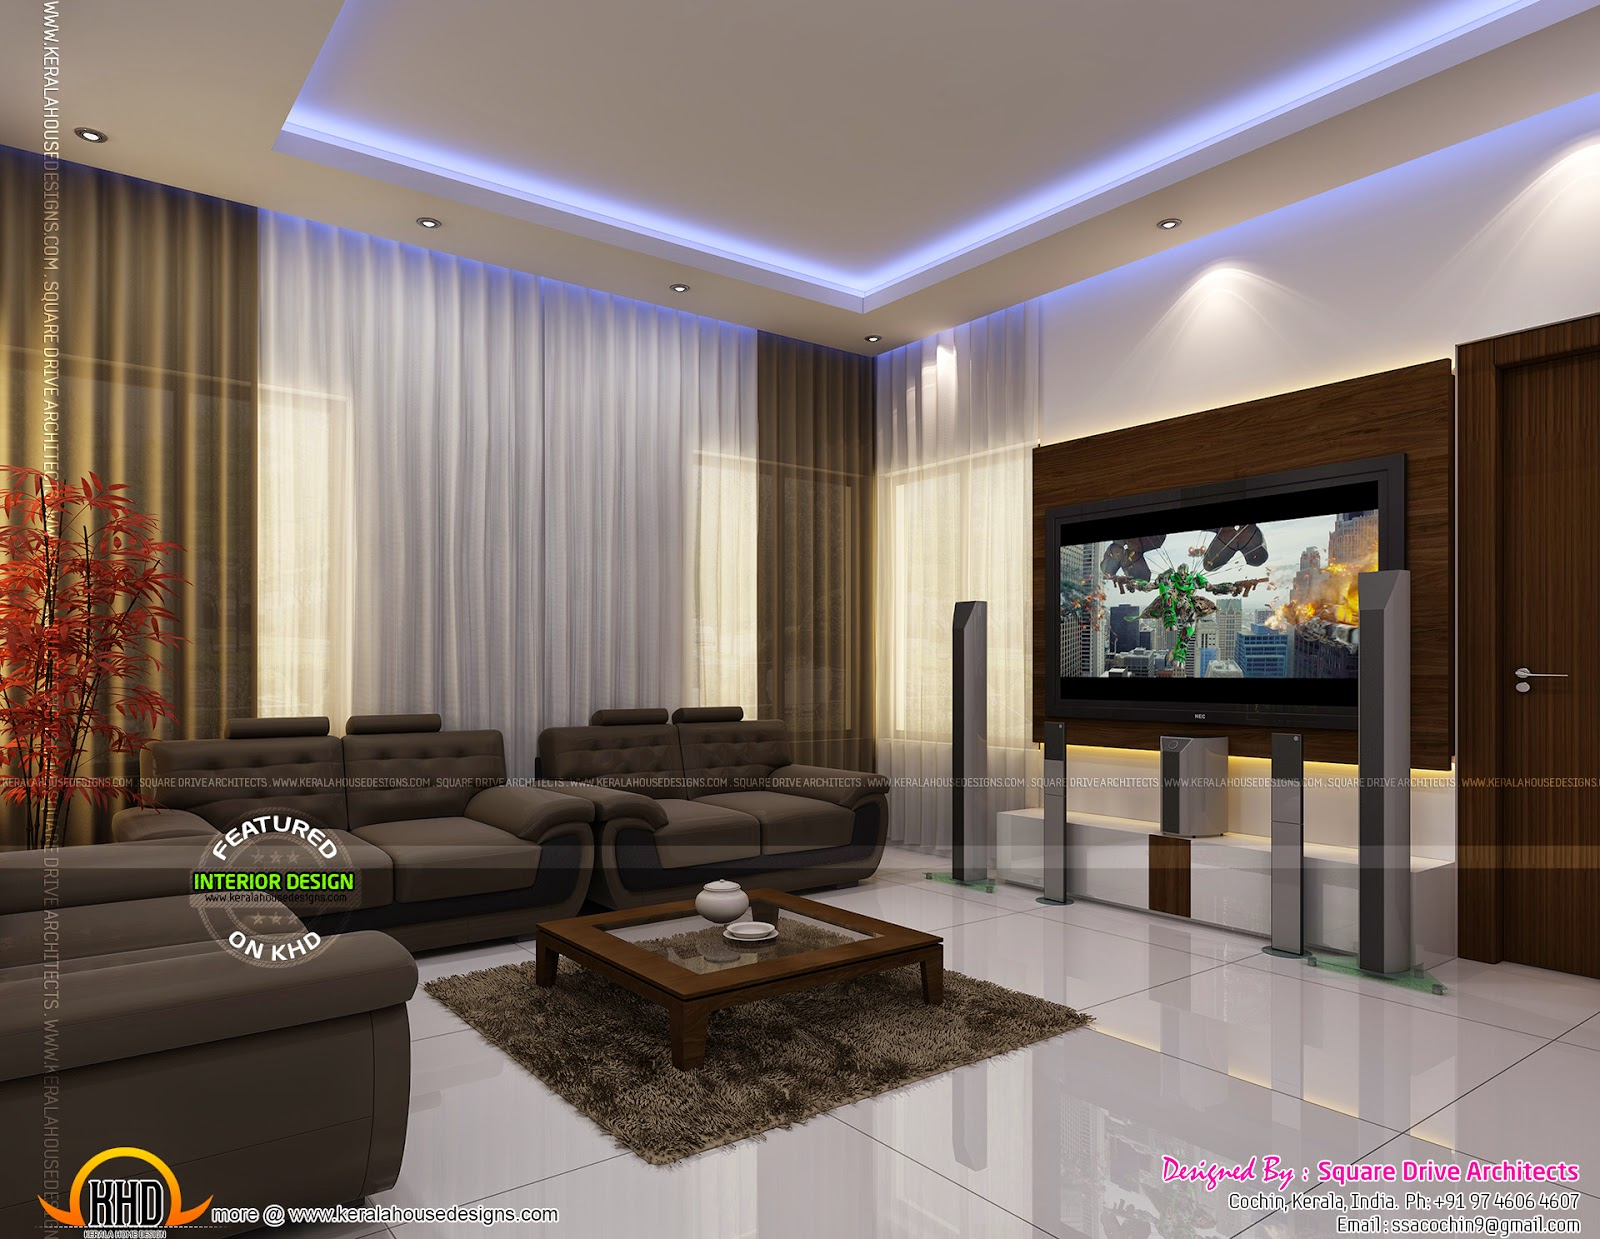 Home interiors designs kerala home design and floor plans for Kerala house living room interior design